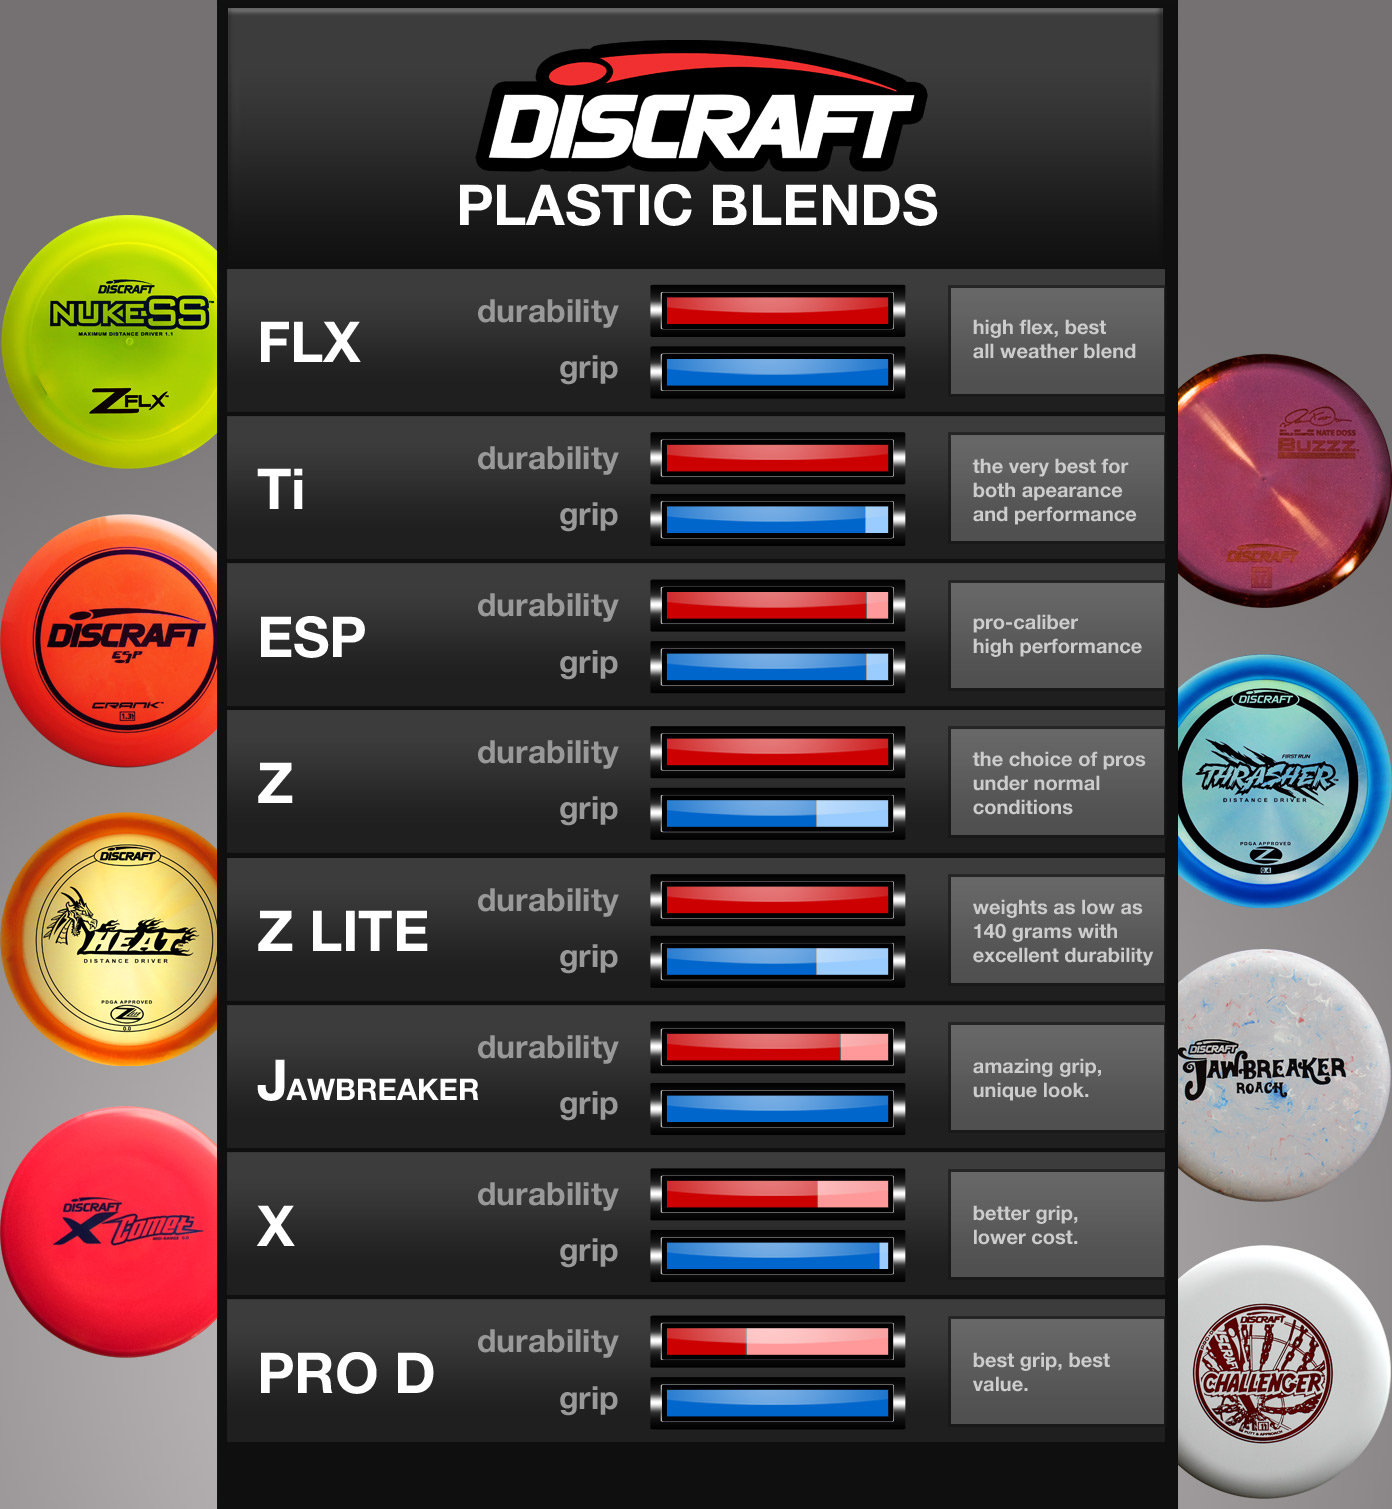 Discraft disc golf plastic blends